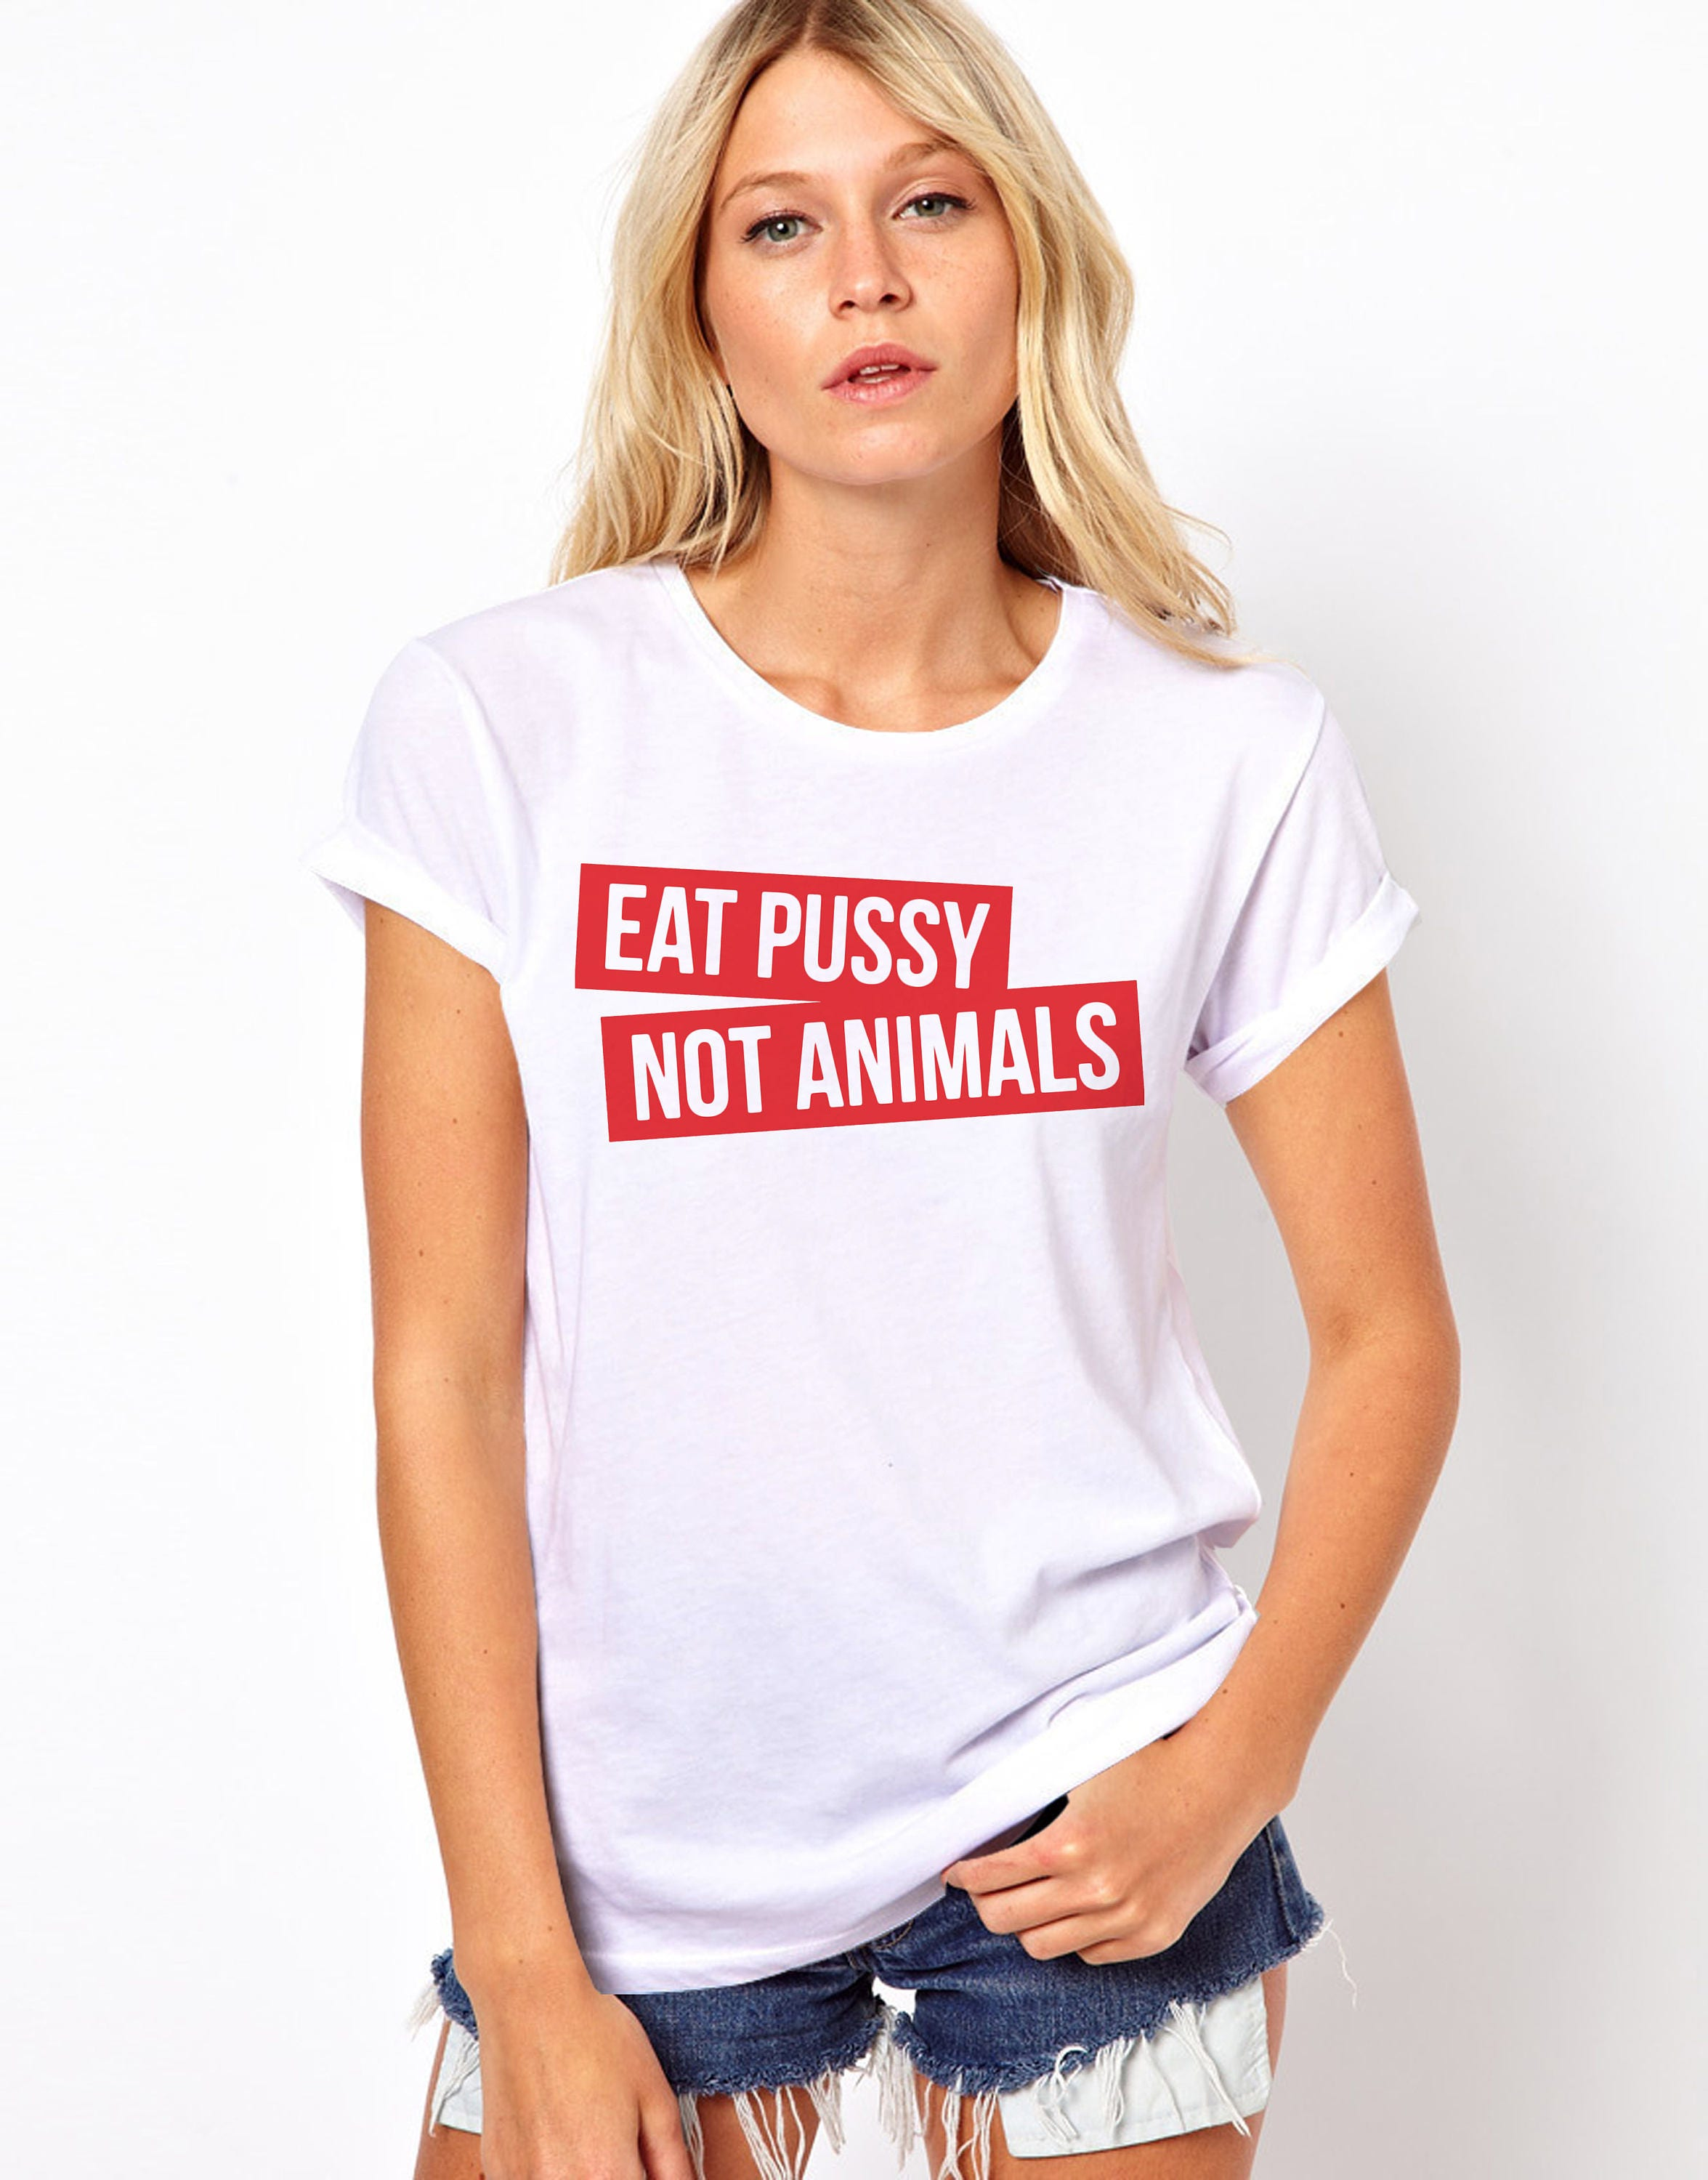 eat pussy not animals funny t-shirt unisex adult